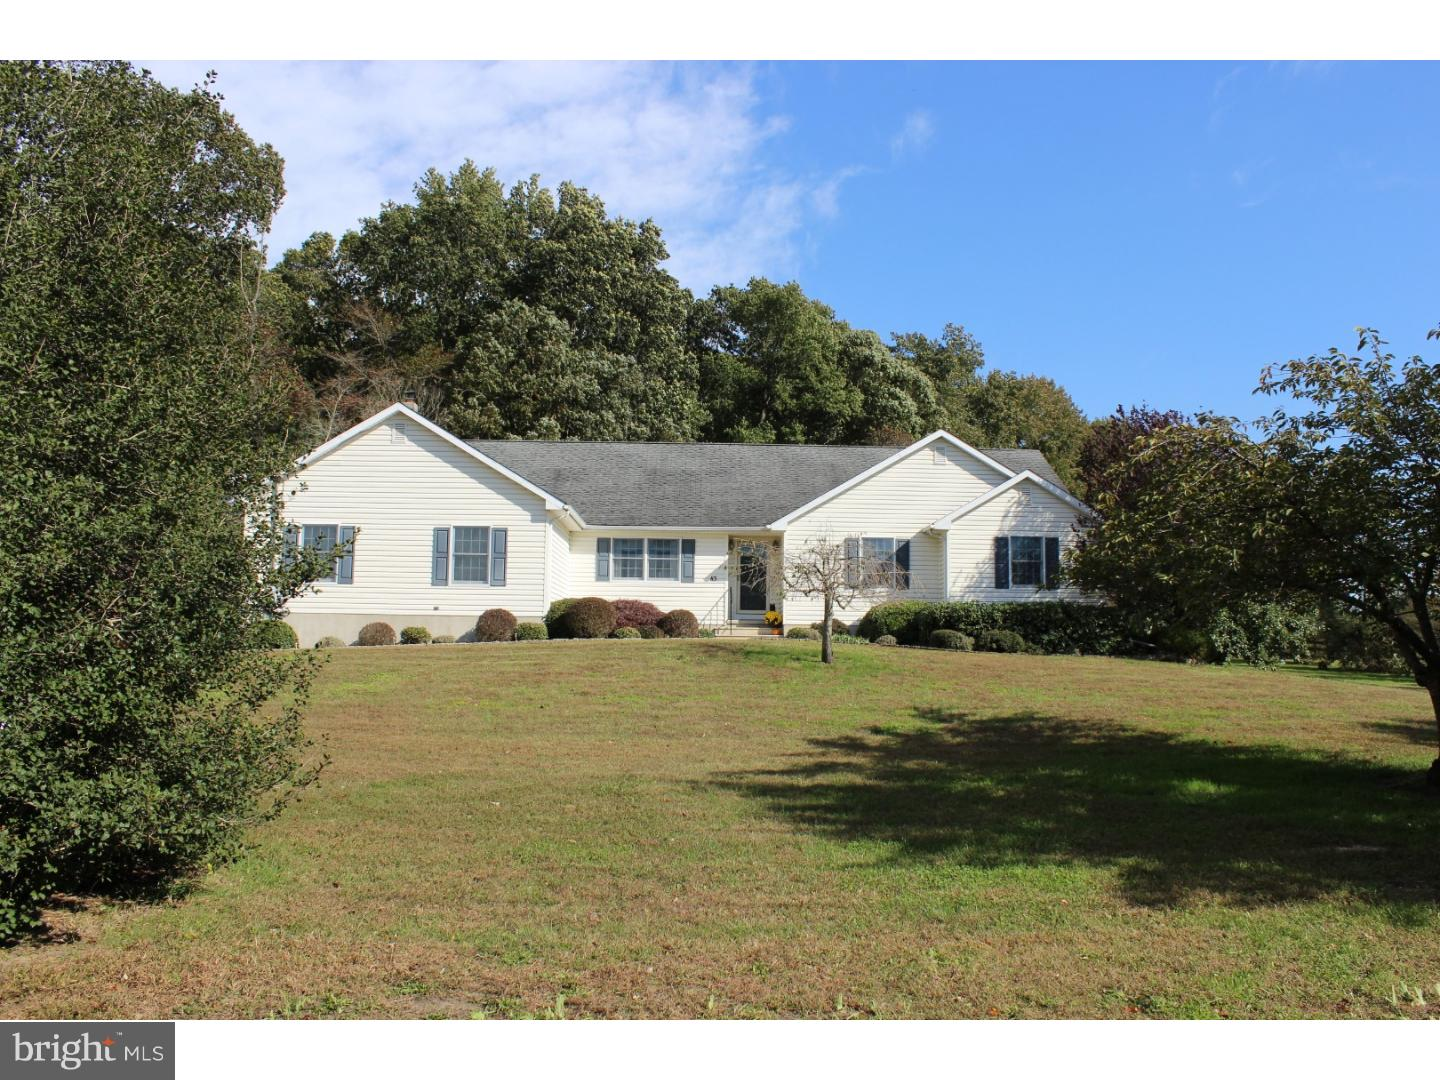 Single Family Home for Sale at 83 HACKETT Road Salem, New Jersey 08098 United States